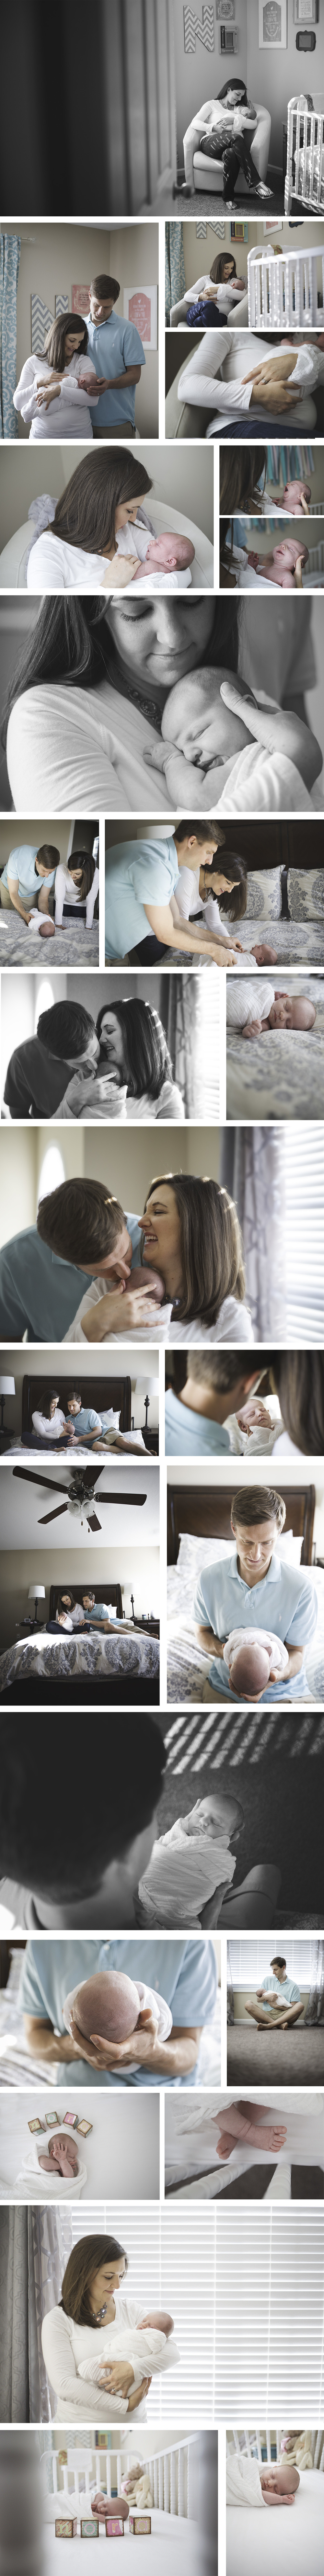 Goins newborn lifestyle session knoxville photographer